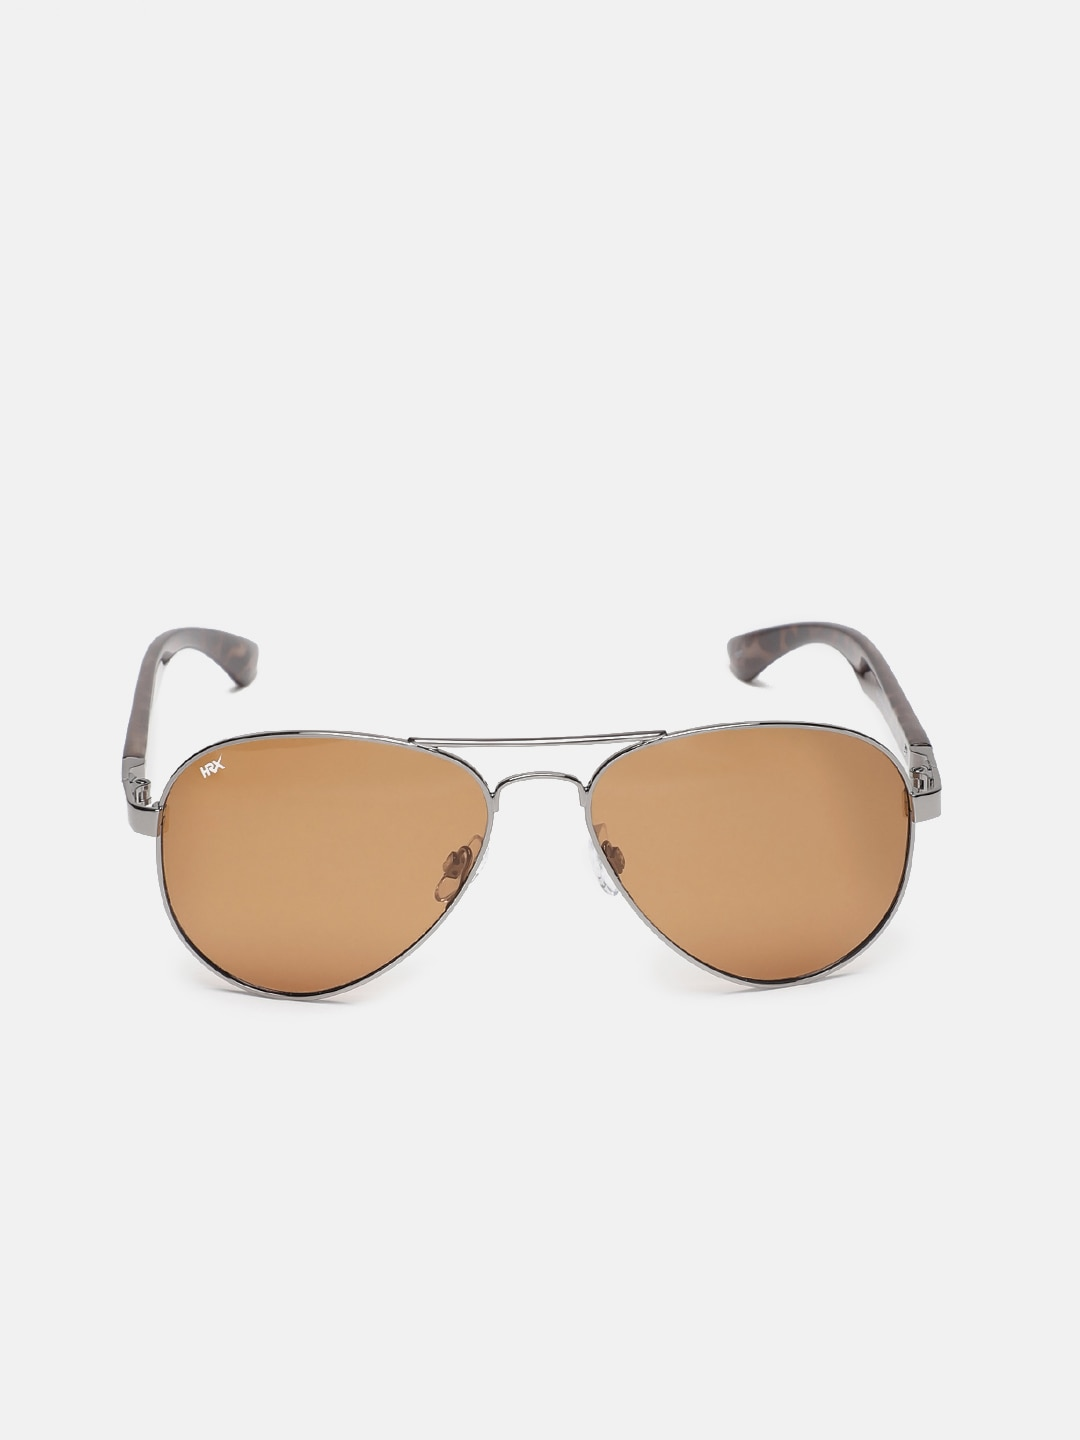 Aviator - Buy Aviator Sunglasses Online at Best Price  98700ff9a8a